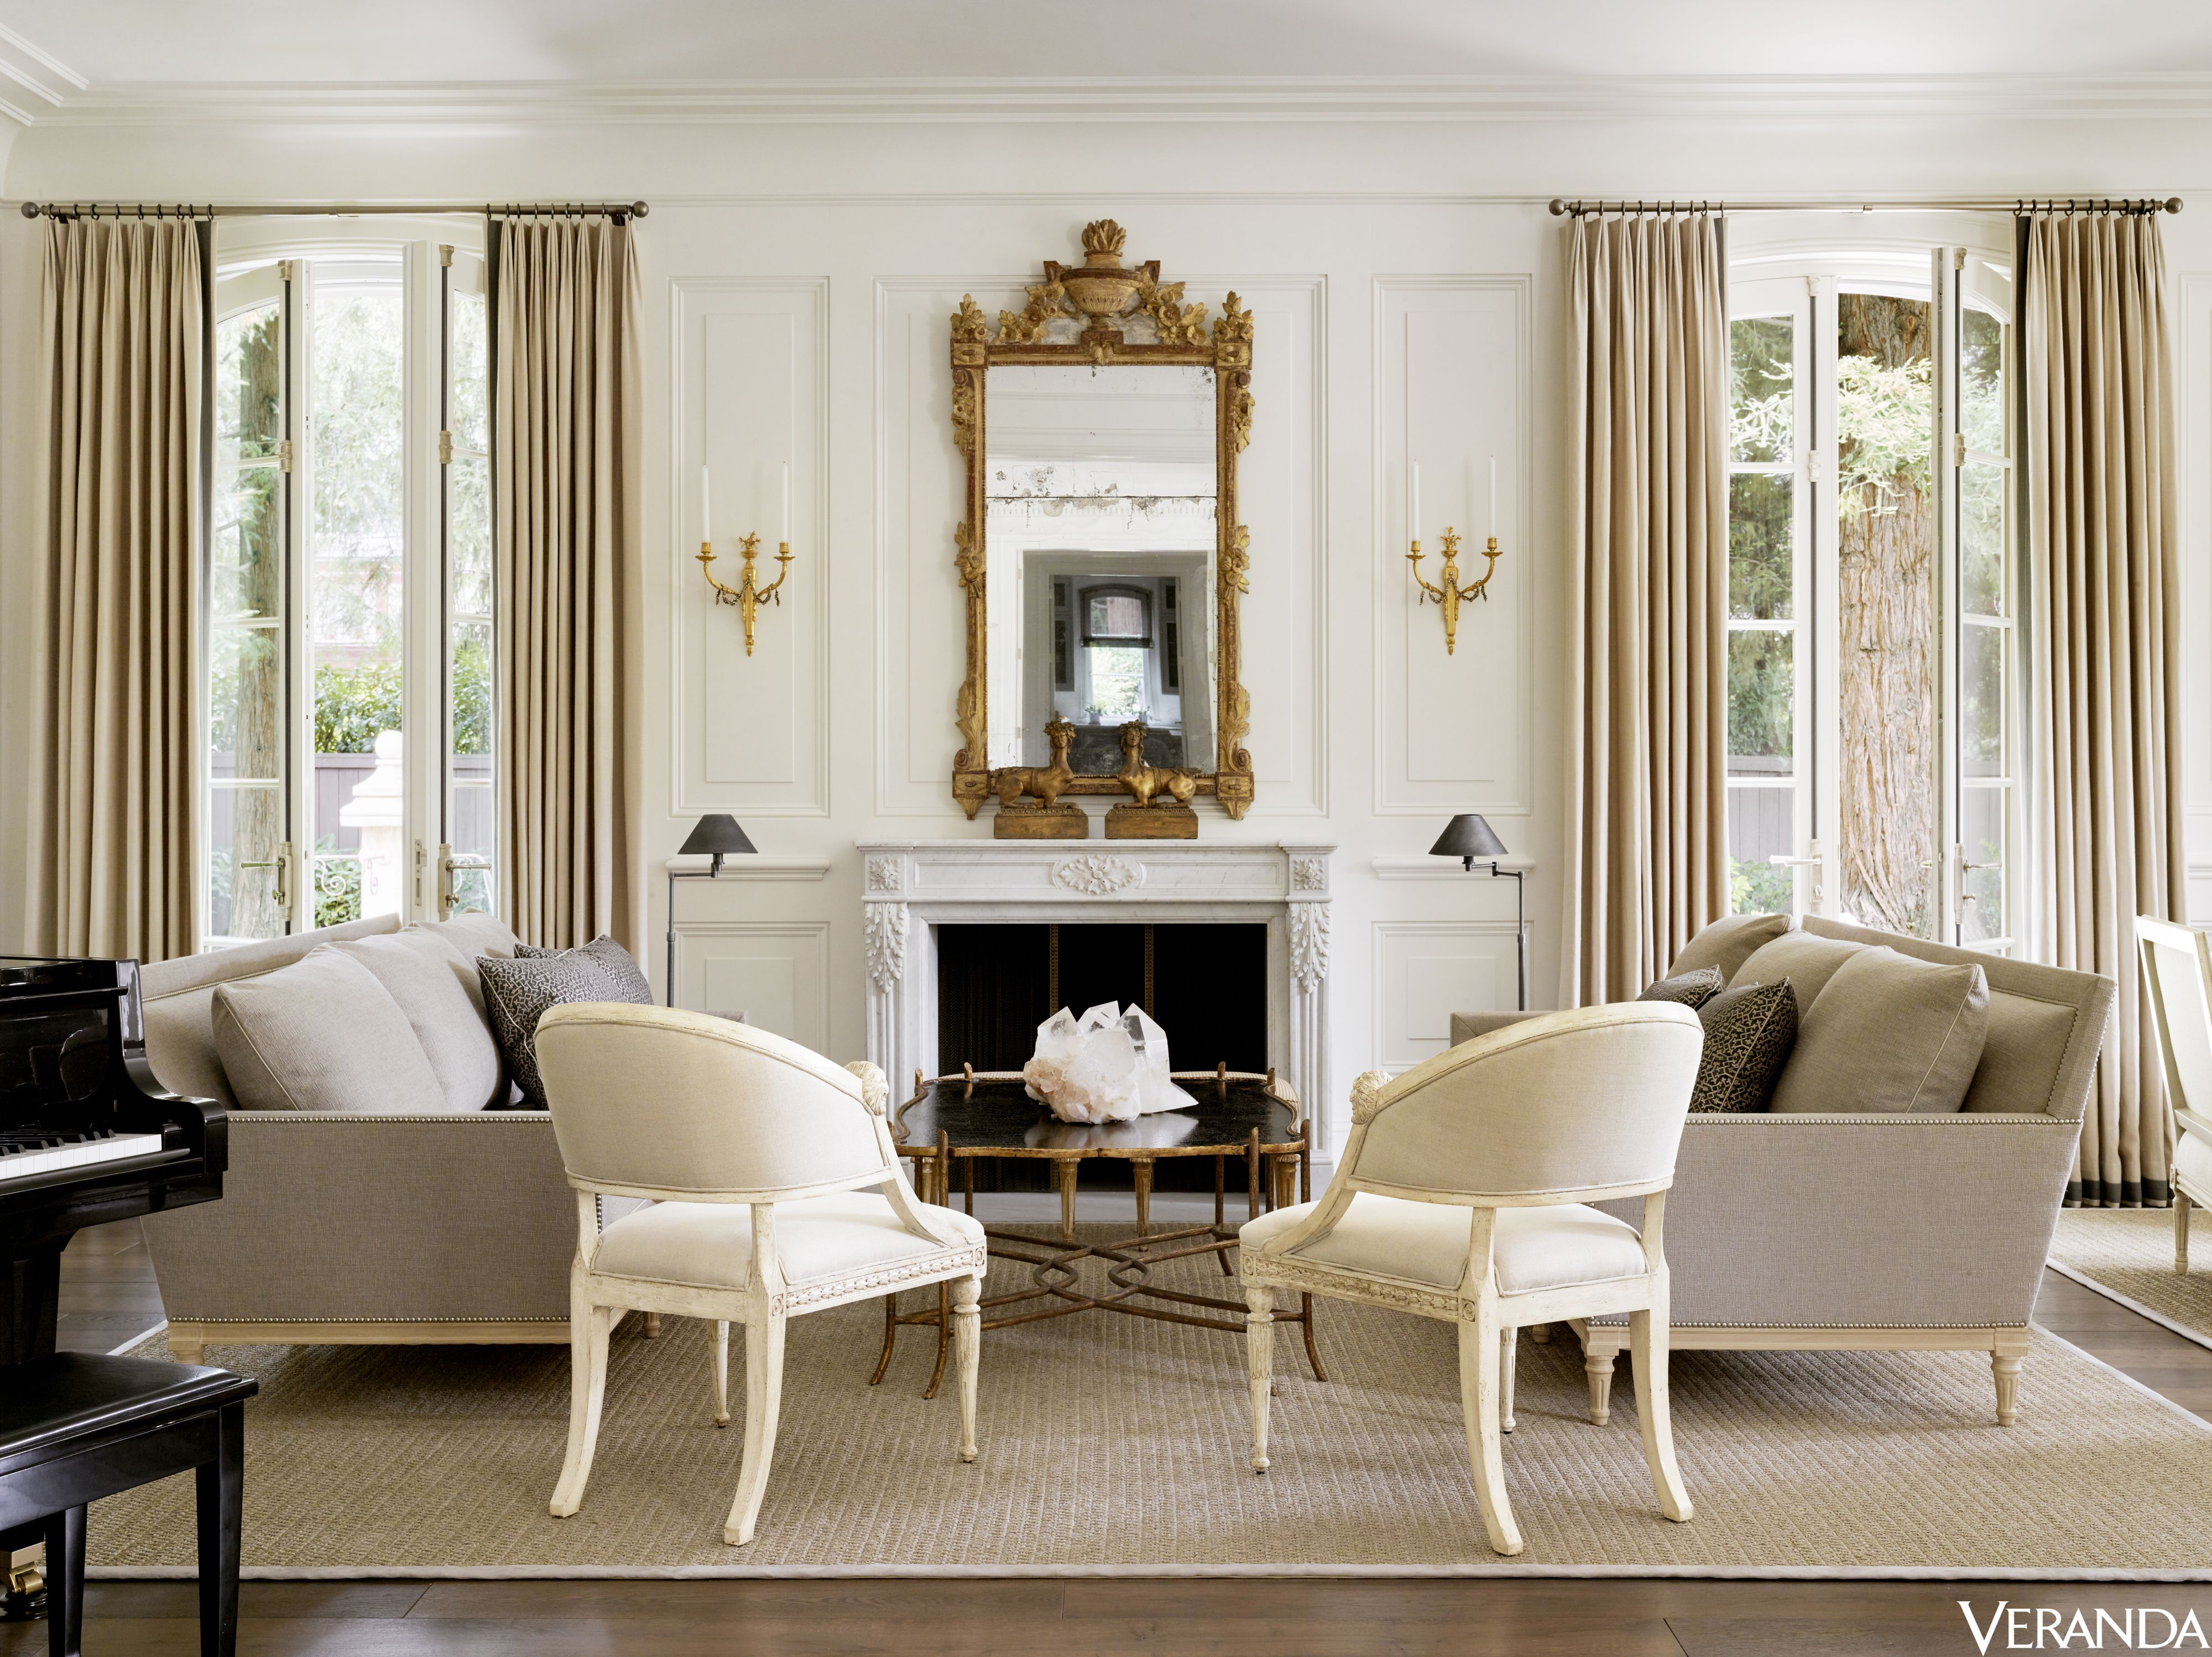 House Tour A California Mansion With Sumptuous French Sensibilities